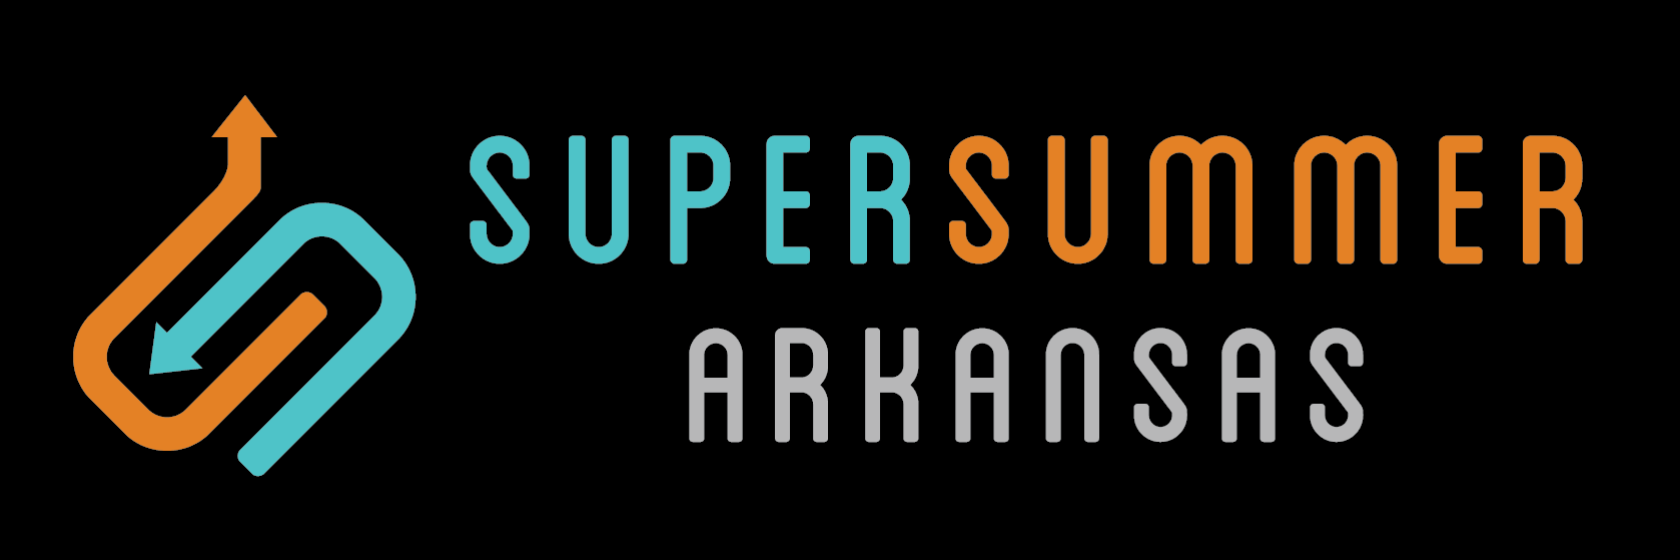 Dates for Super Summer 2022 coming soon!